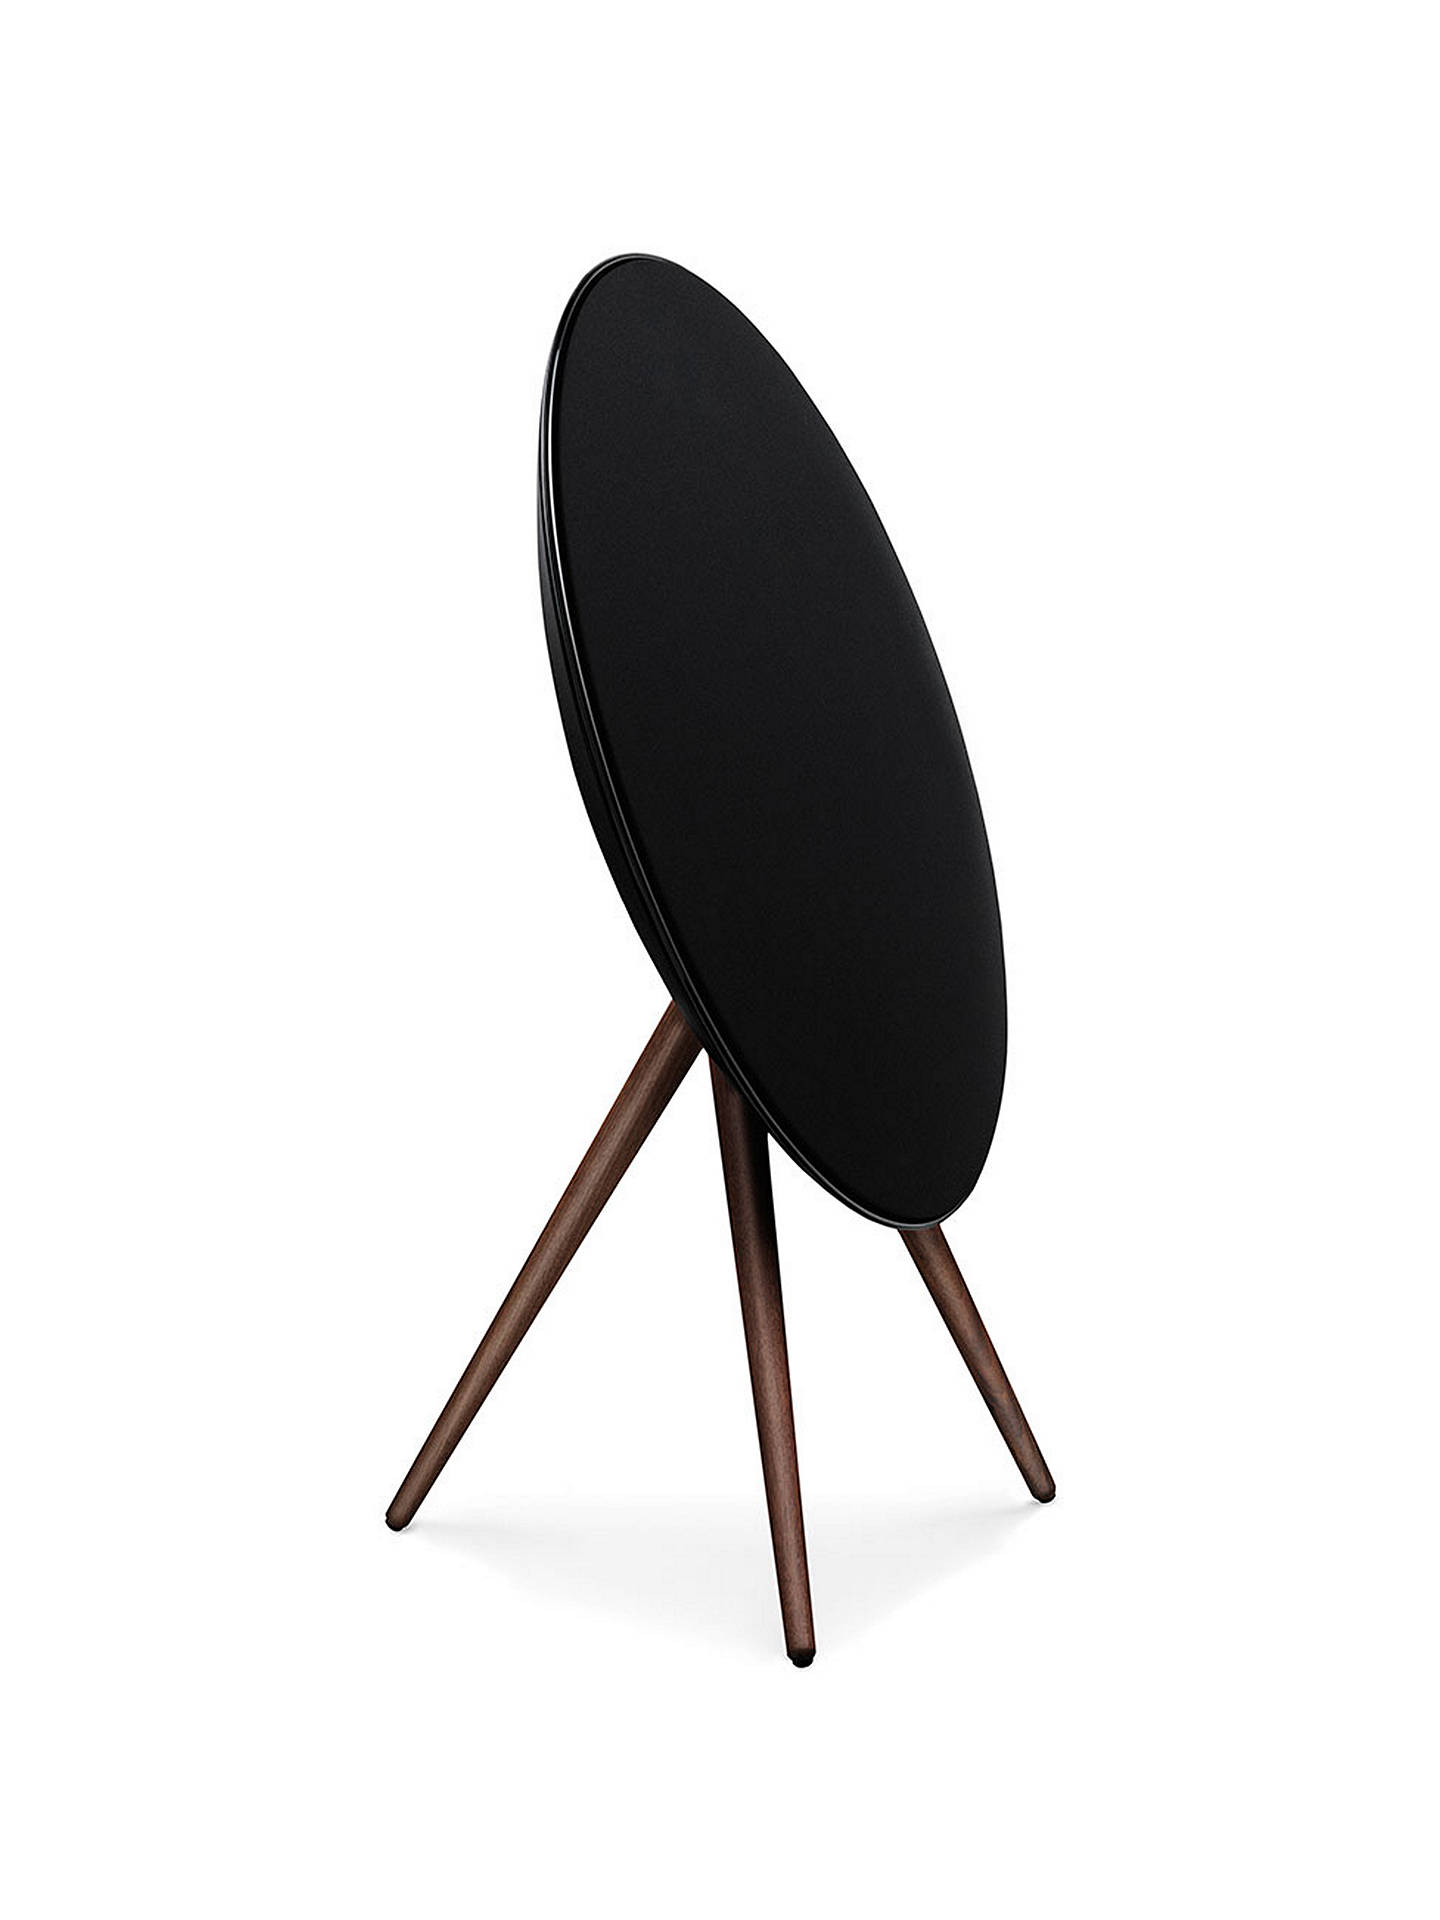 Buy Bang & Olufsen Beoplay A9 Bluetooth, AirPlay, Google Cast & DLNA Music System, Black with Walnut Legs Online at johnlewis.com